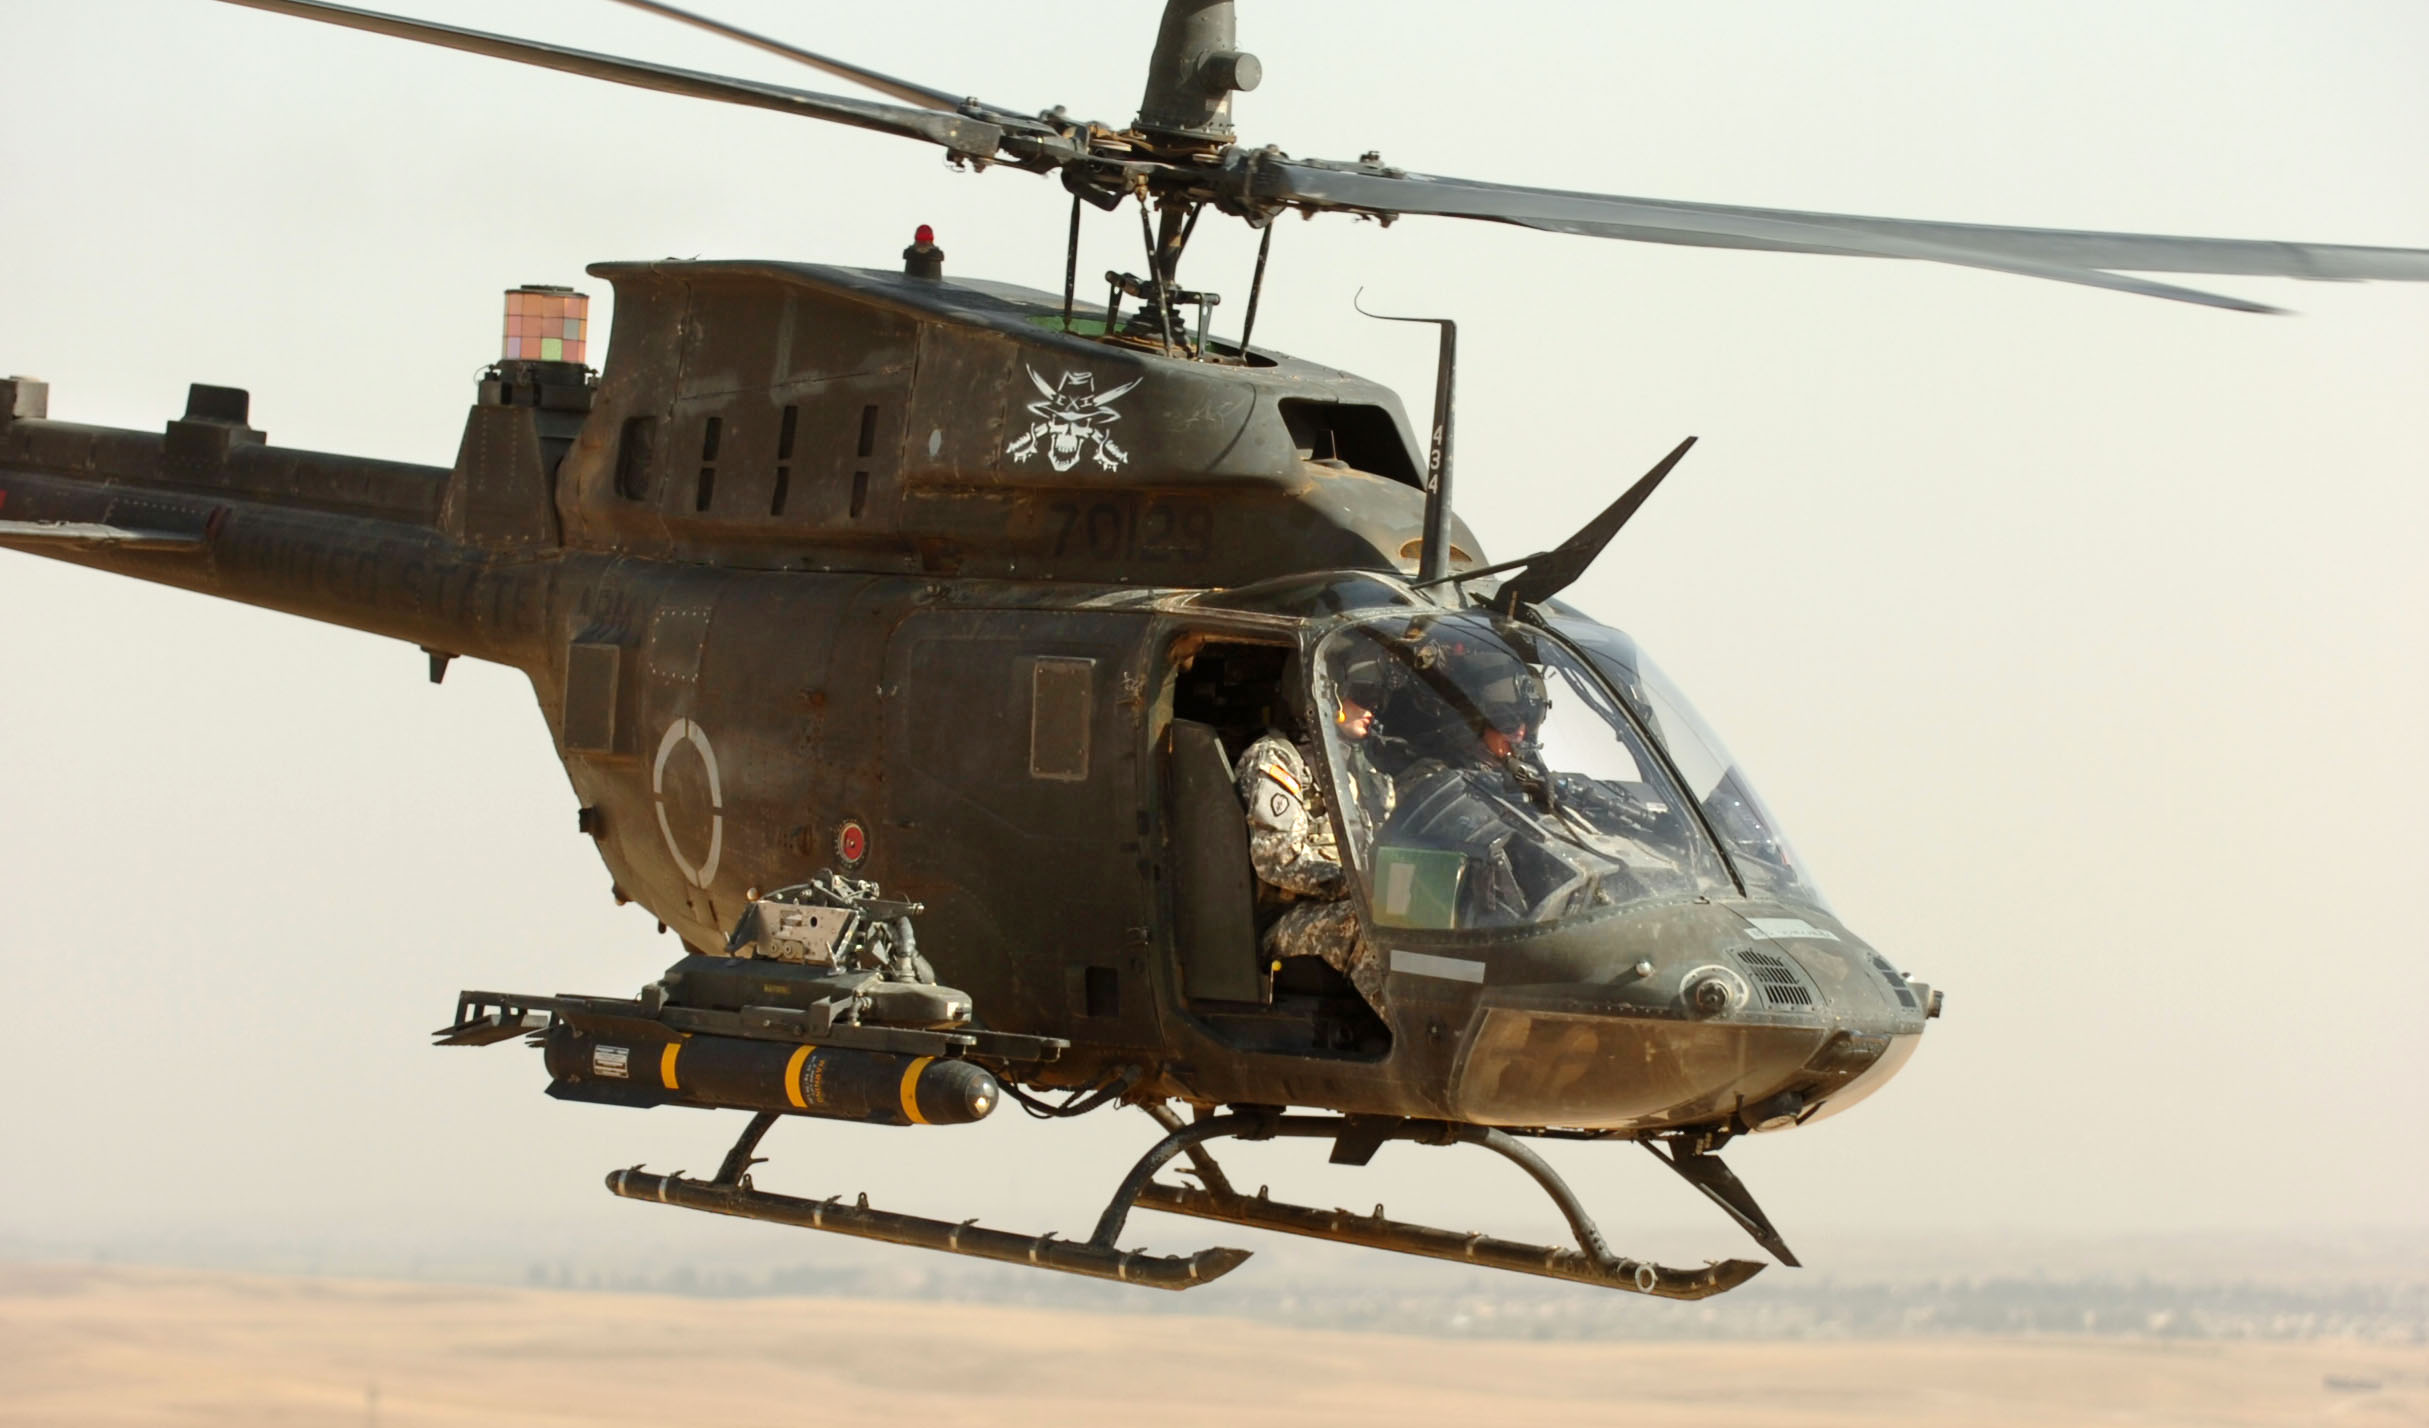 fire scout helicopter with File Hellfire Armed Oh 58 Kiowa In Iraq on  also 26106 Mq Drone From Bo2 in addition File US Navy 110930 N JQ696 408 An MQ 8B Fire Scout unmanned aerial vehicle  UAV  successfully  pletes the first unmanned biofuel flight at Webster Fi furthermore Bell OH 58A together with 911 Aerial Photos Of World Trade Center.